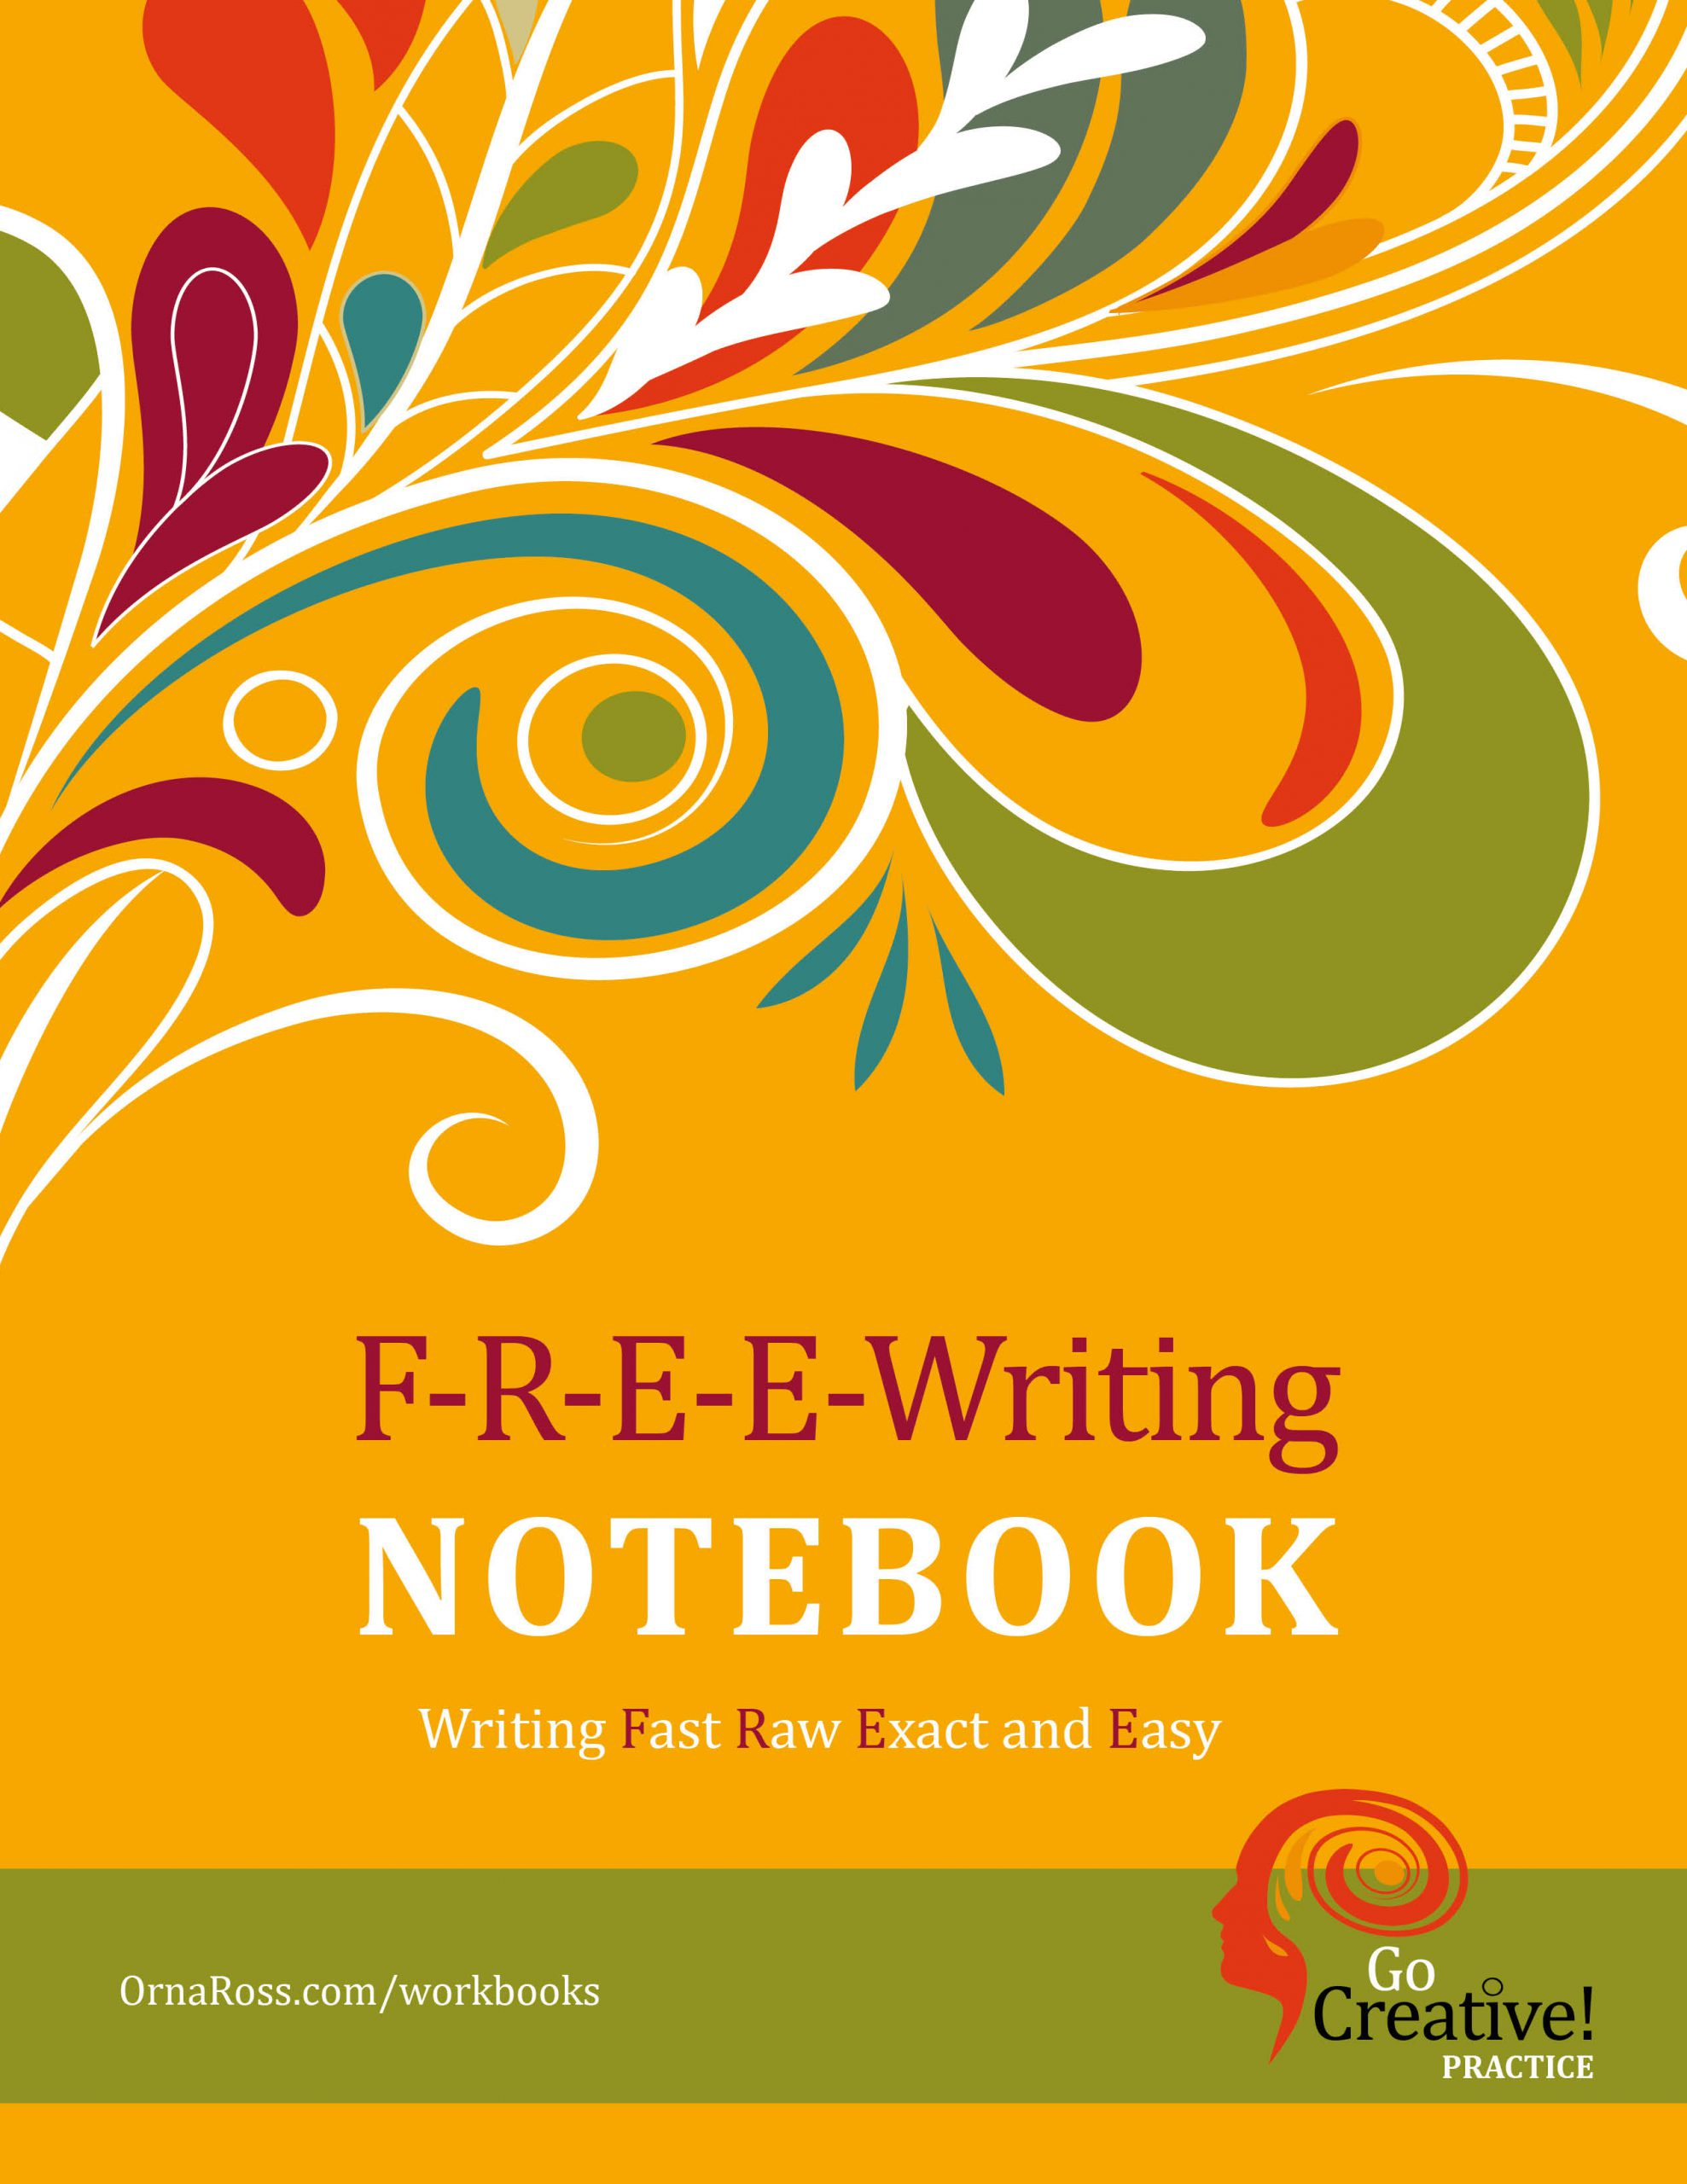 F-R-E-E-Writing Notebook